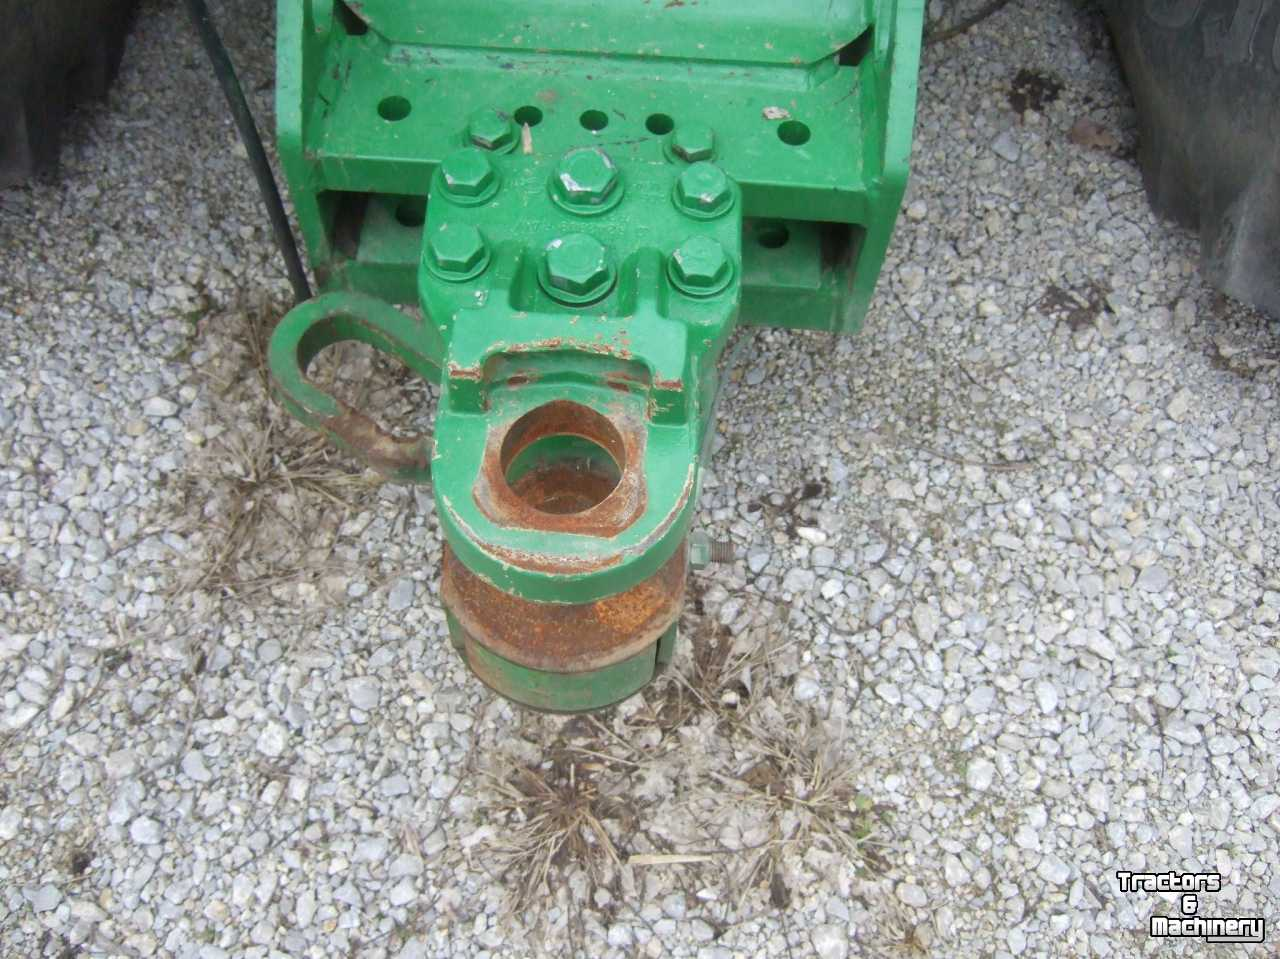 John Deere 9530 DELUXE CAB ACTIVE SEAT 4WD TRACTOR IL USA - Used Tractors -  2008 - IL 62510 - Assumption - Illinois - USA